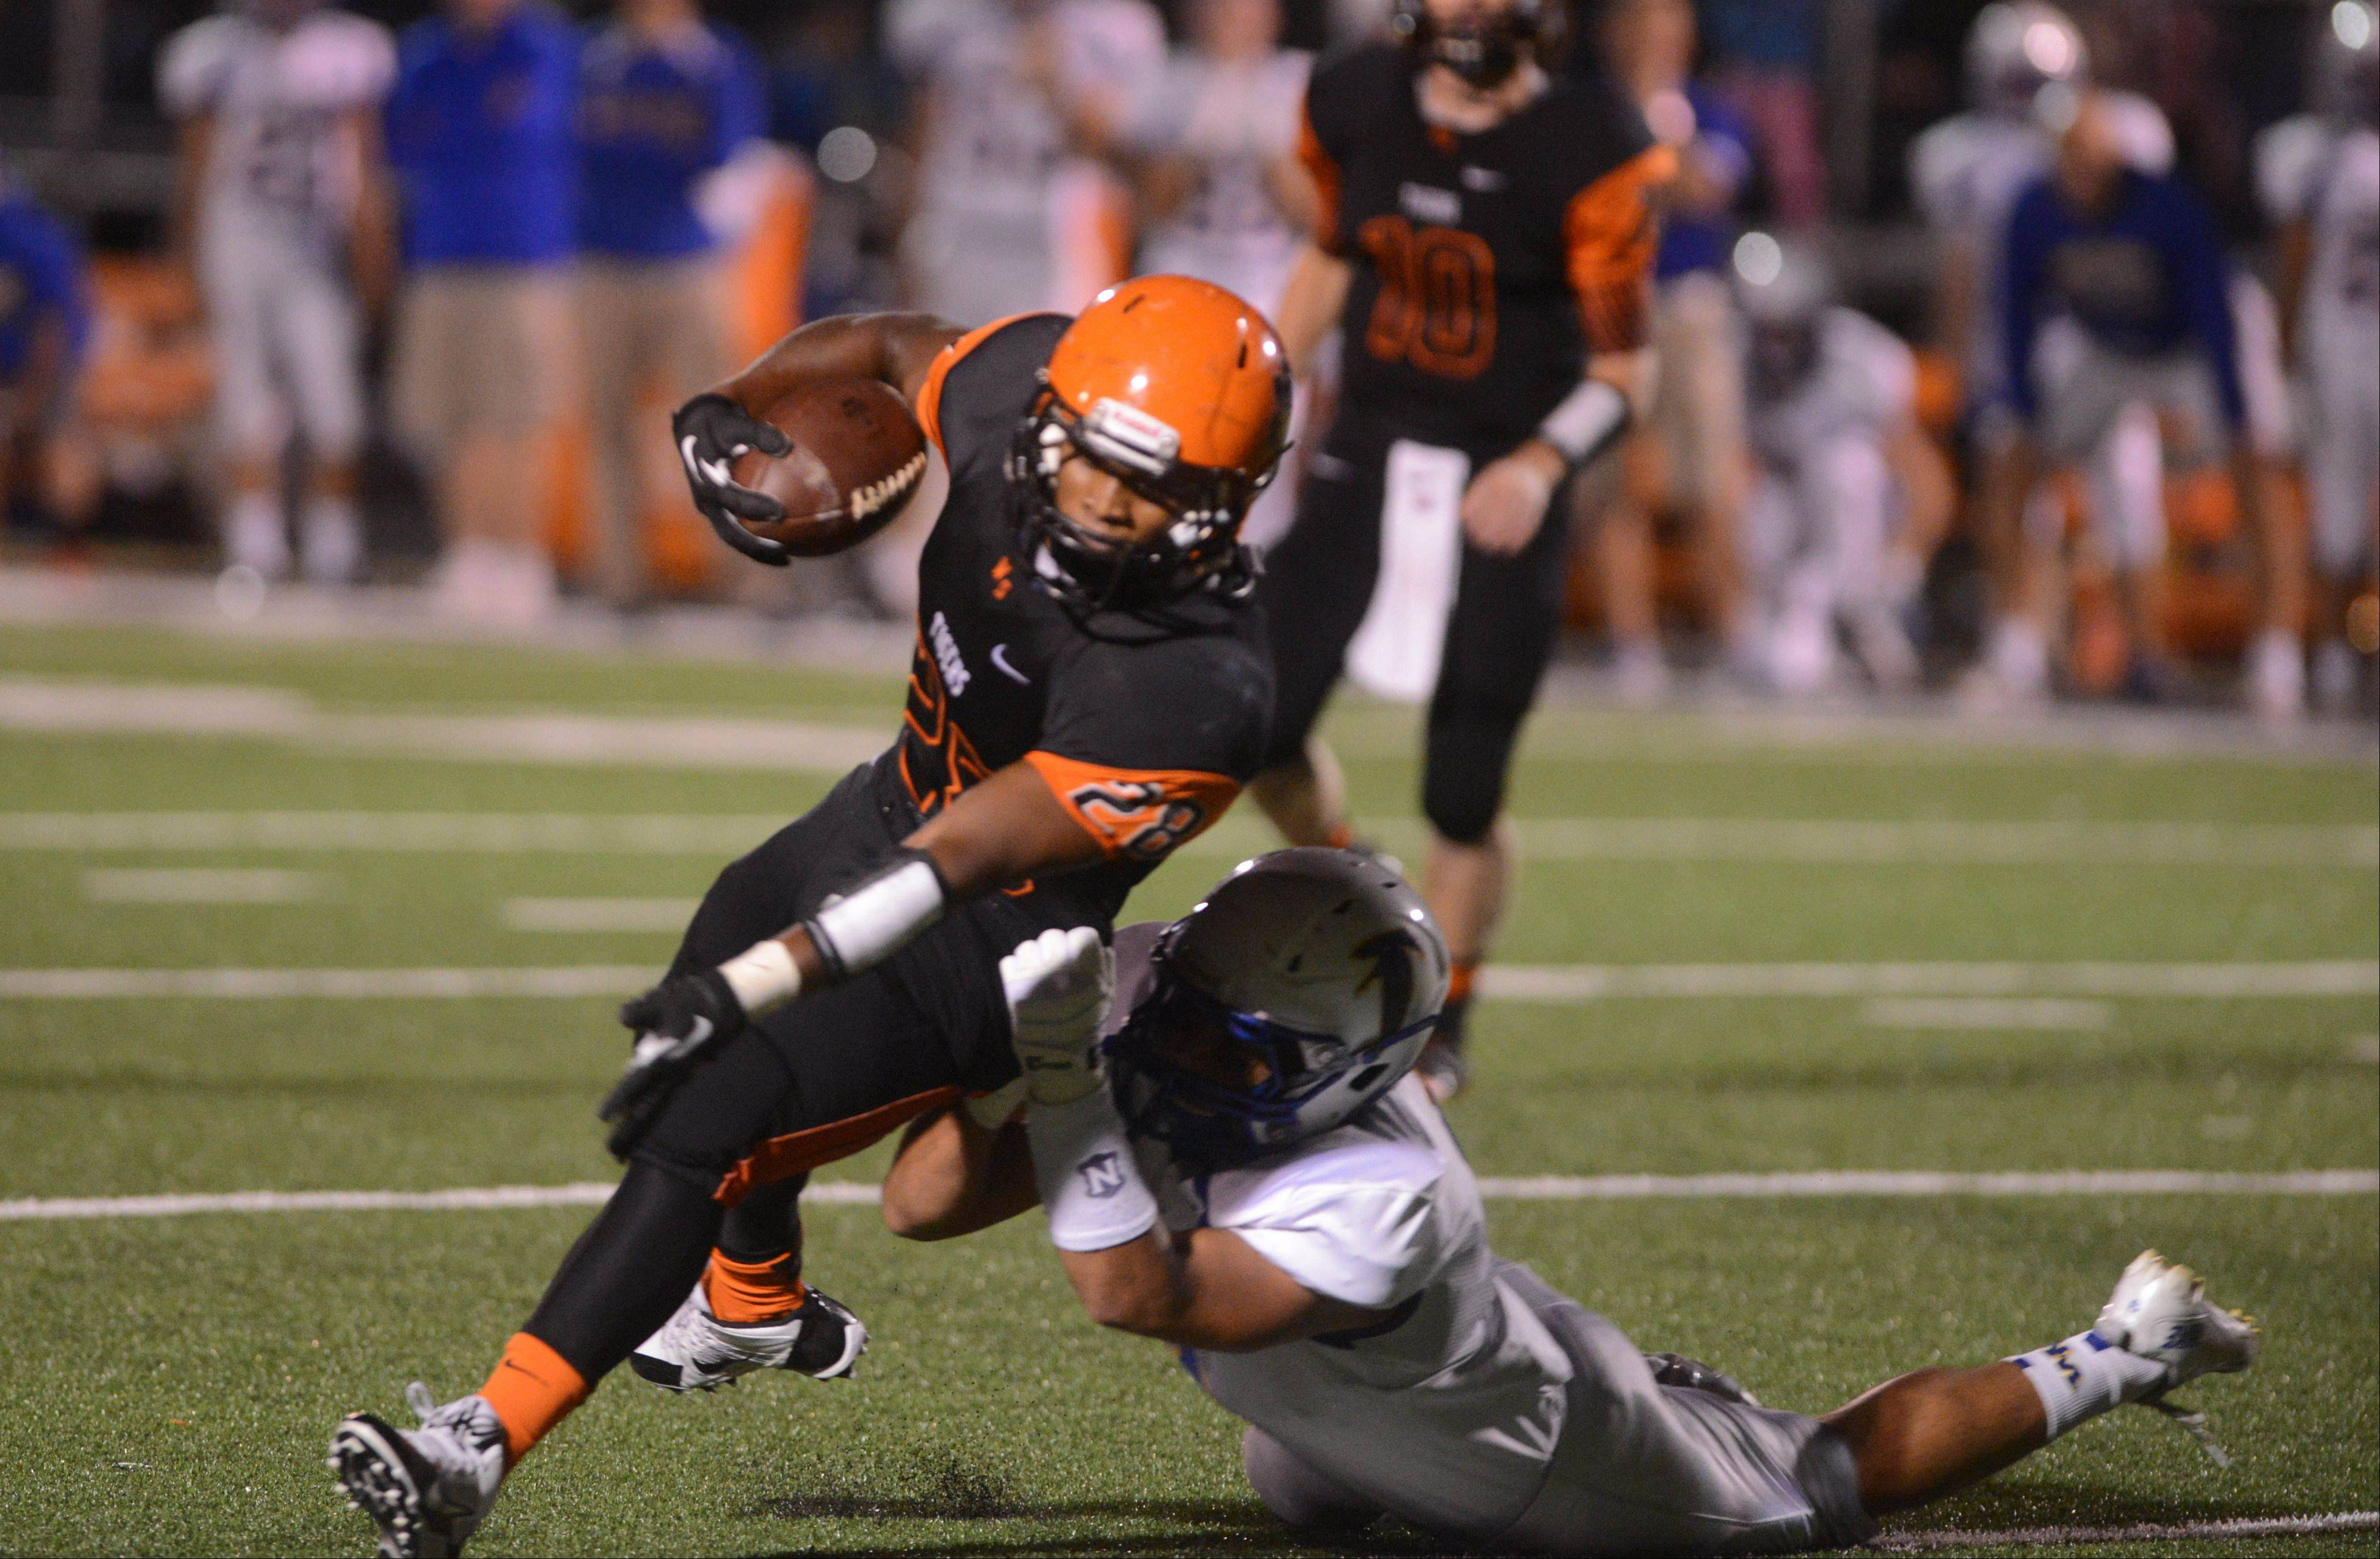 Images: Wheaton North vs. Wheaton Warrenville South football